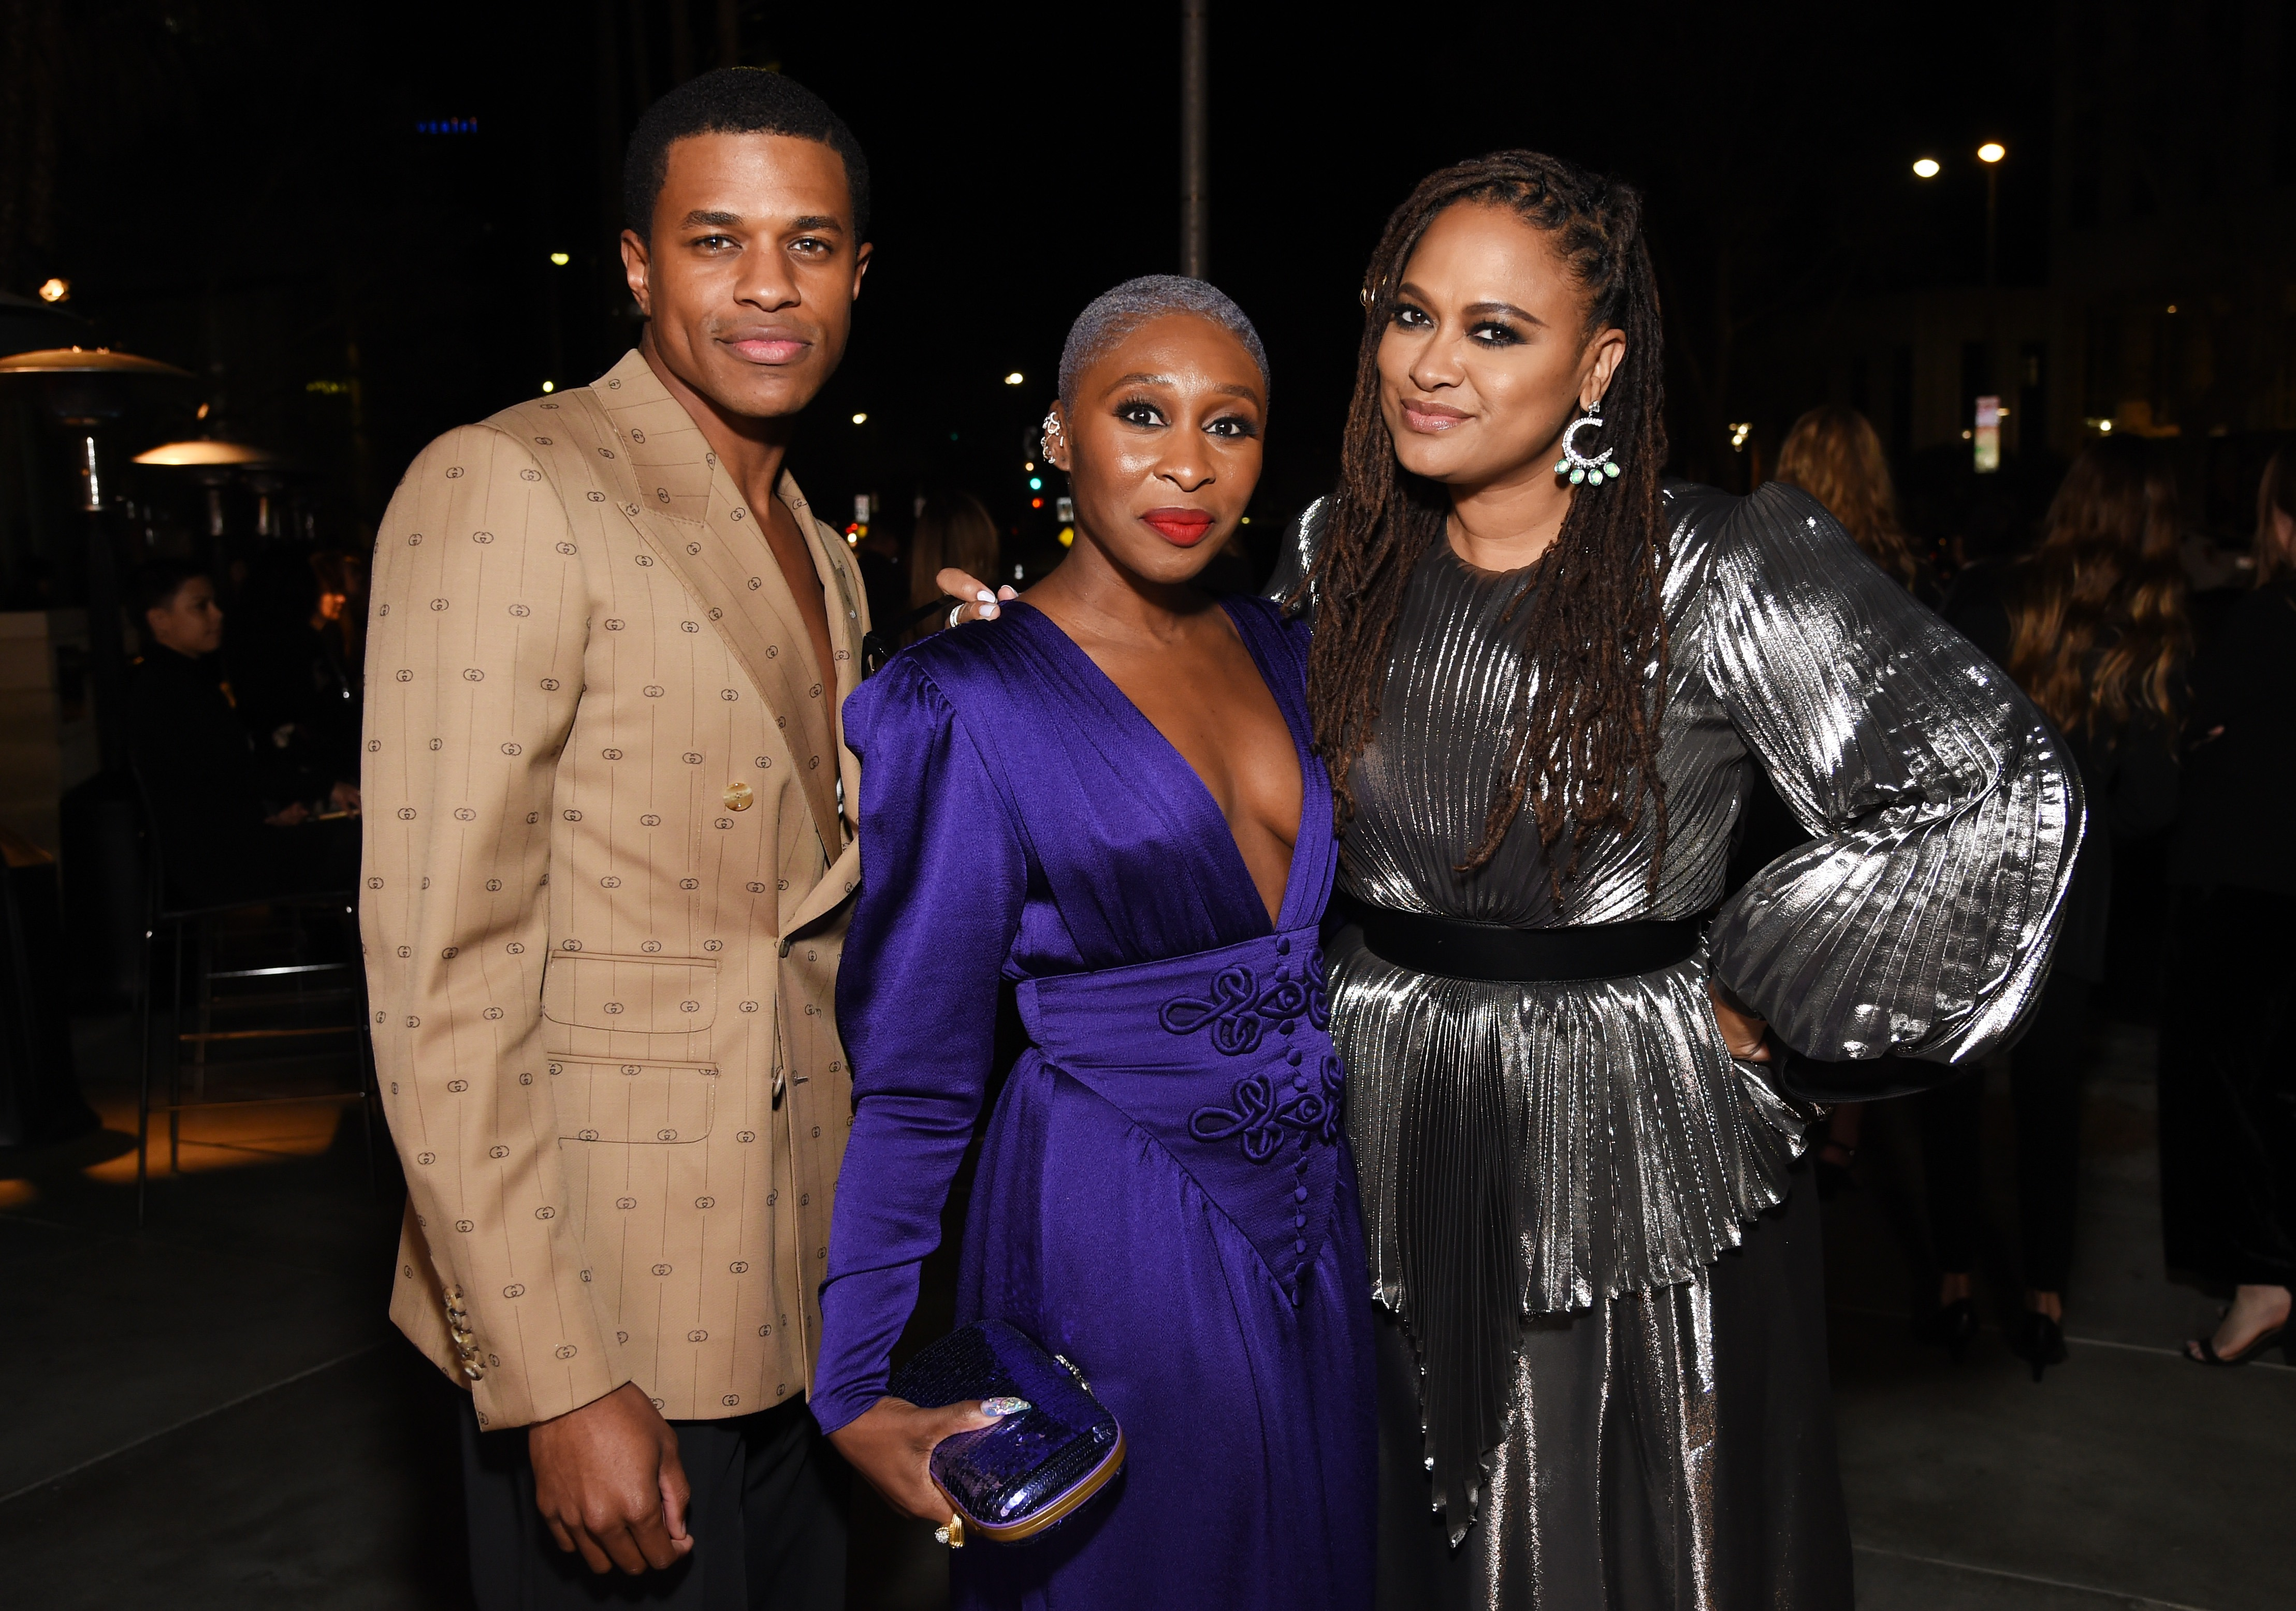 Jeremy Pope, Cynthia Erivo, and Ava DuVernay, photo by Michael Kovac/Getty Images for LACMA